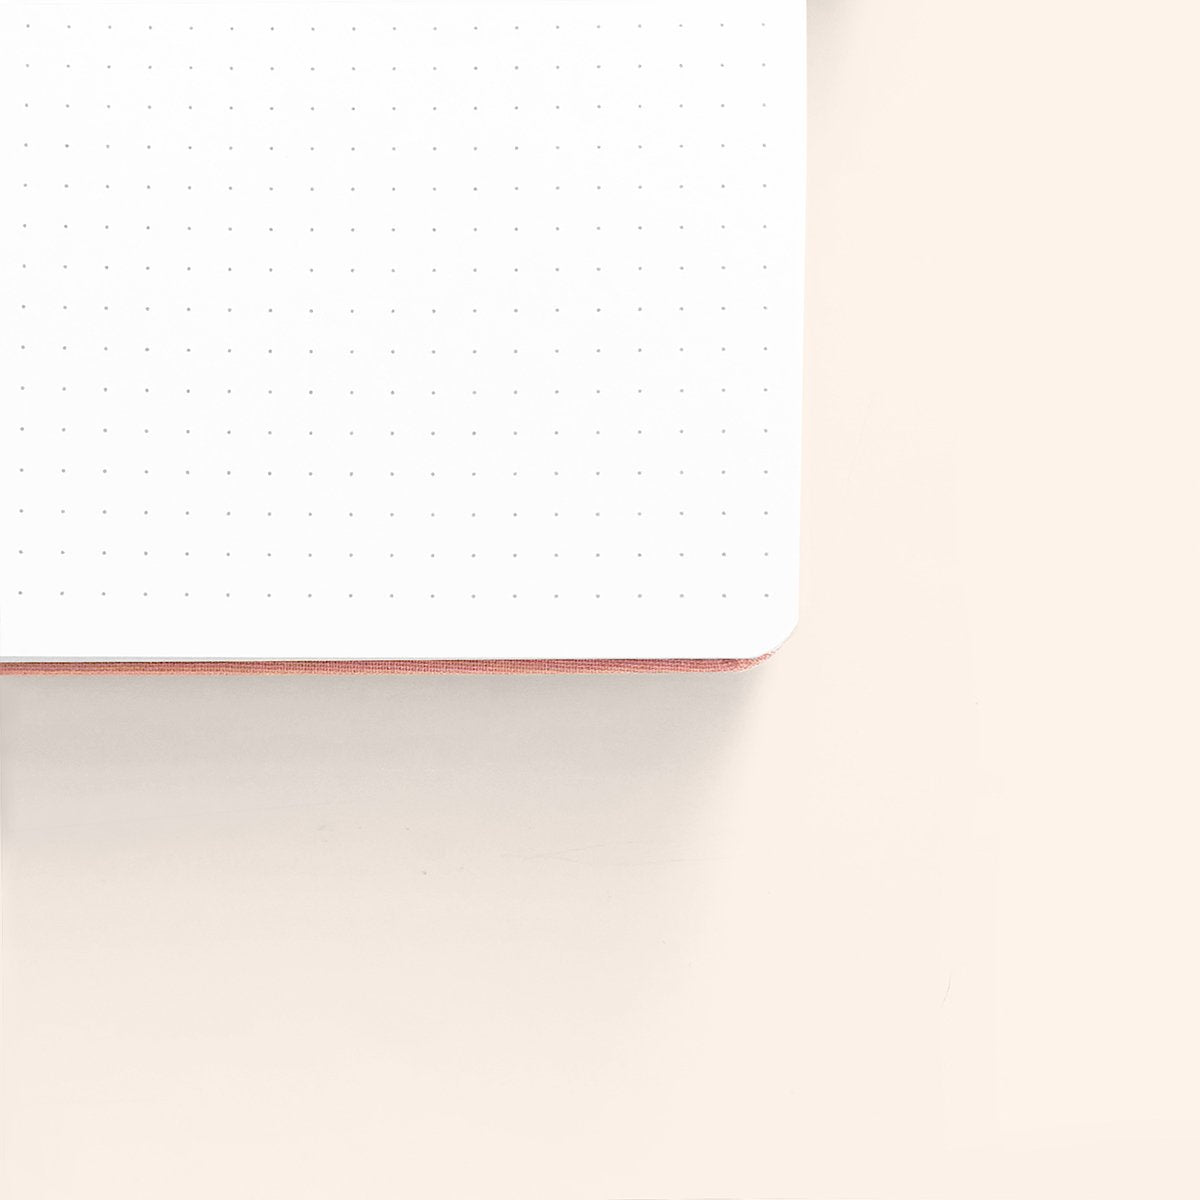 A5 DOT GRID NOTEBOOK WITH 192 PAGES : BLACK